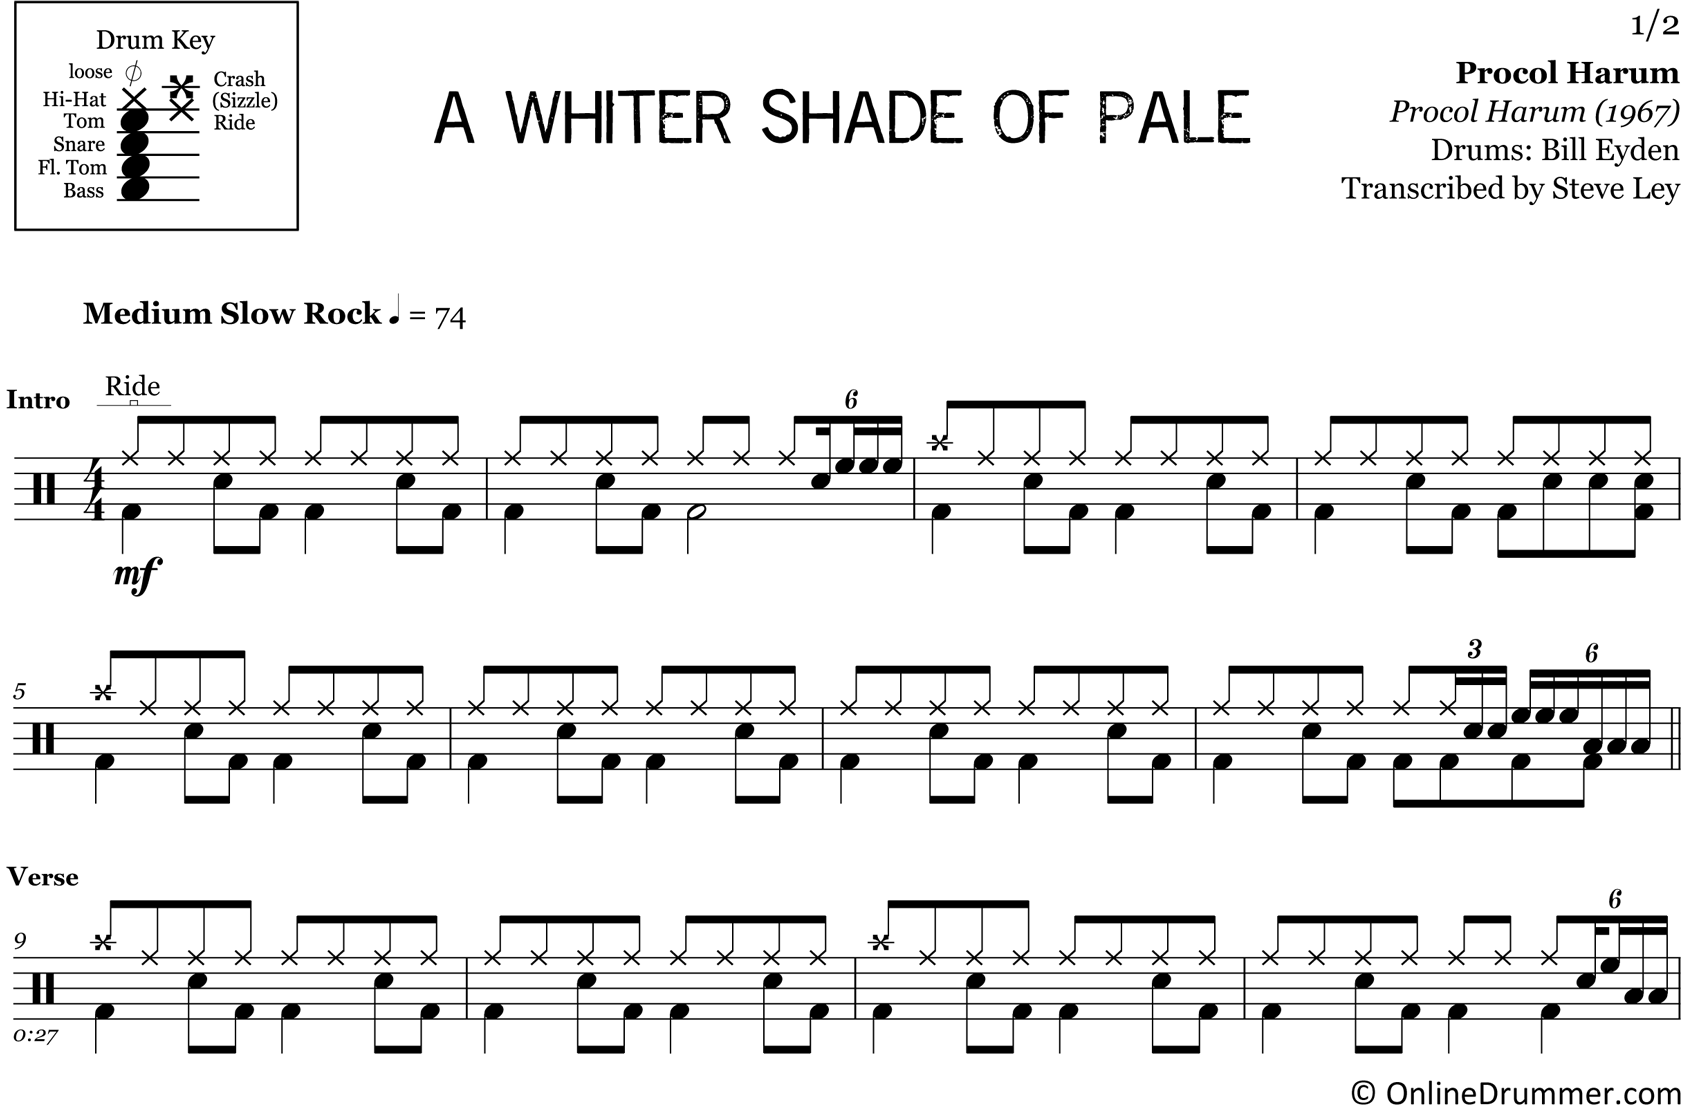 A Whiter Shade Of Pale - Procol Harum - Drum Sheet Music